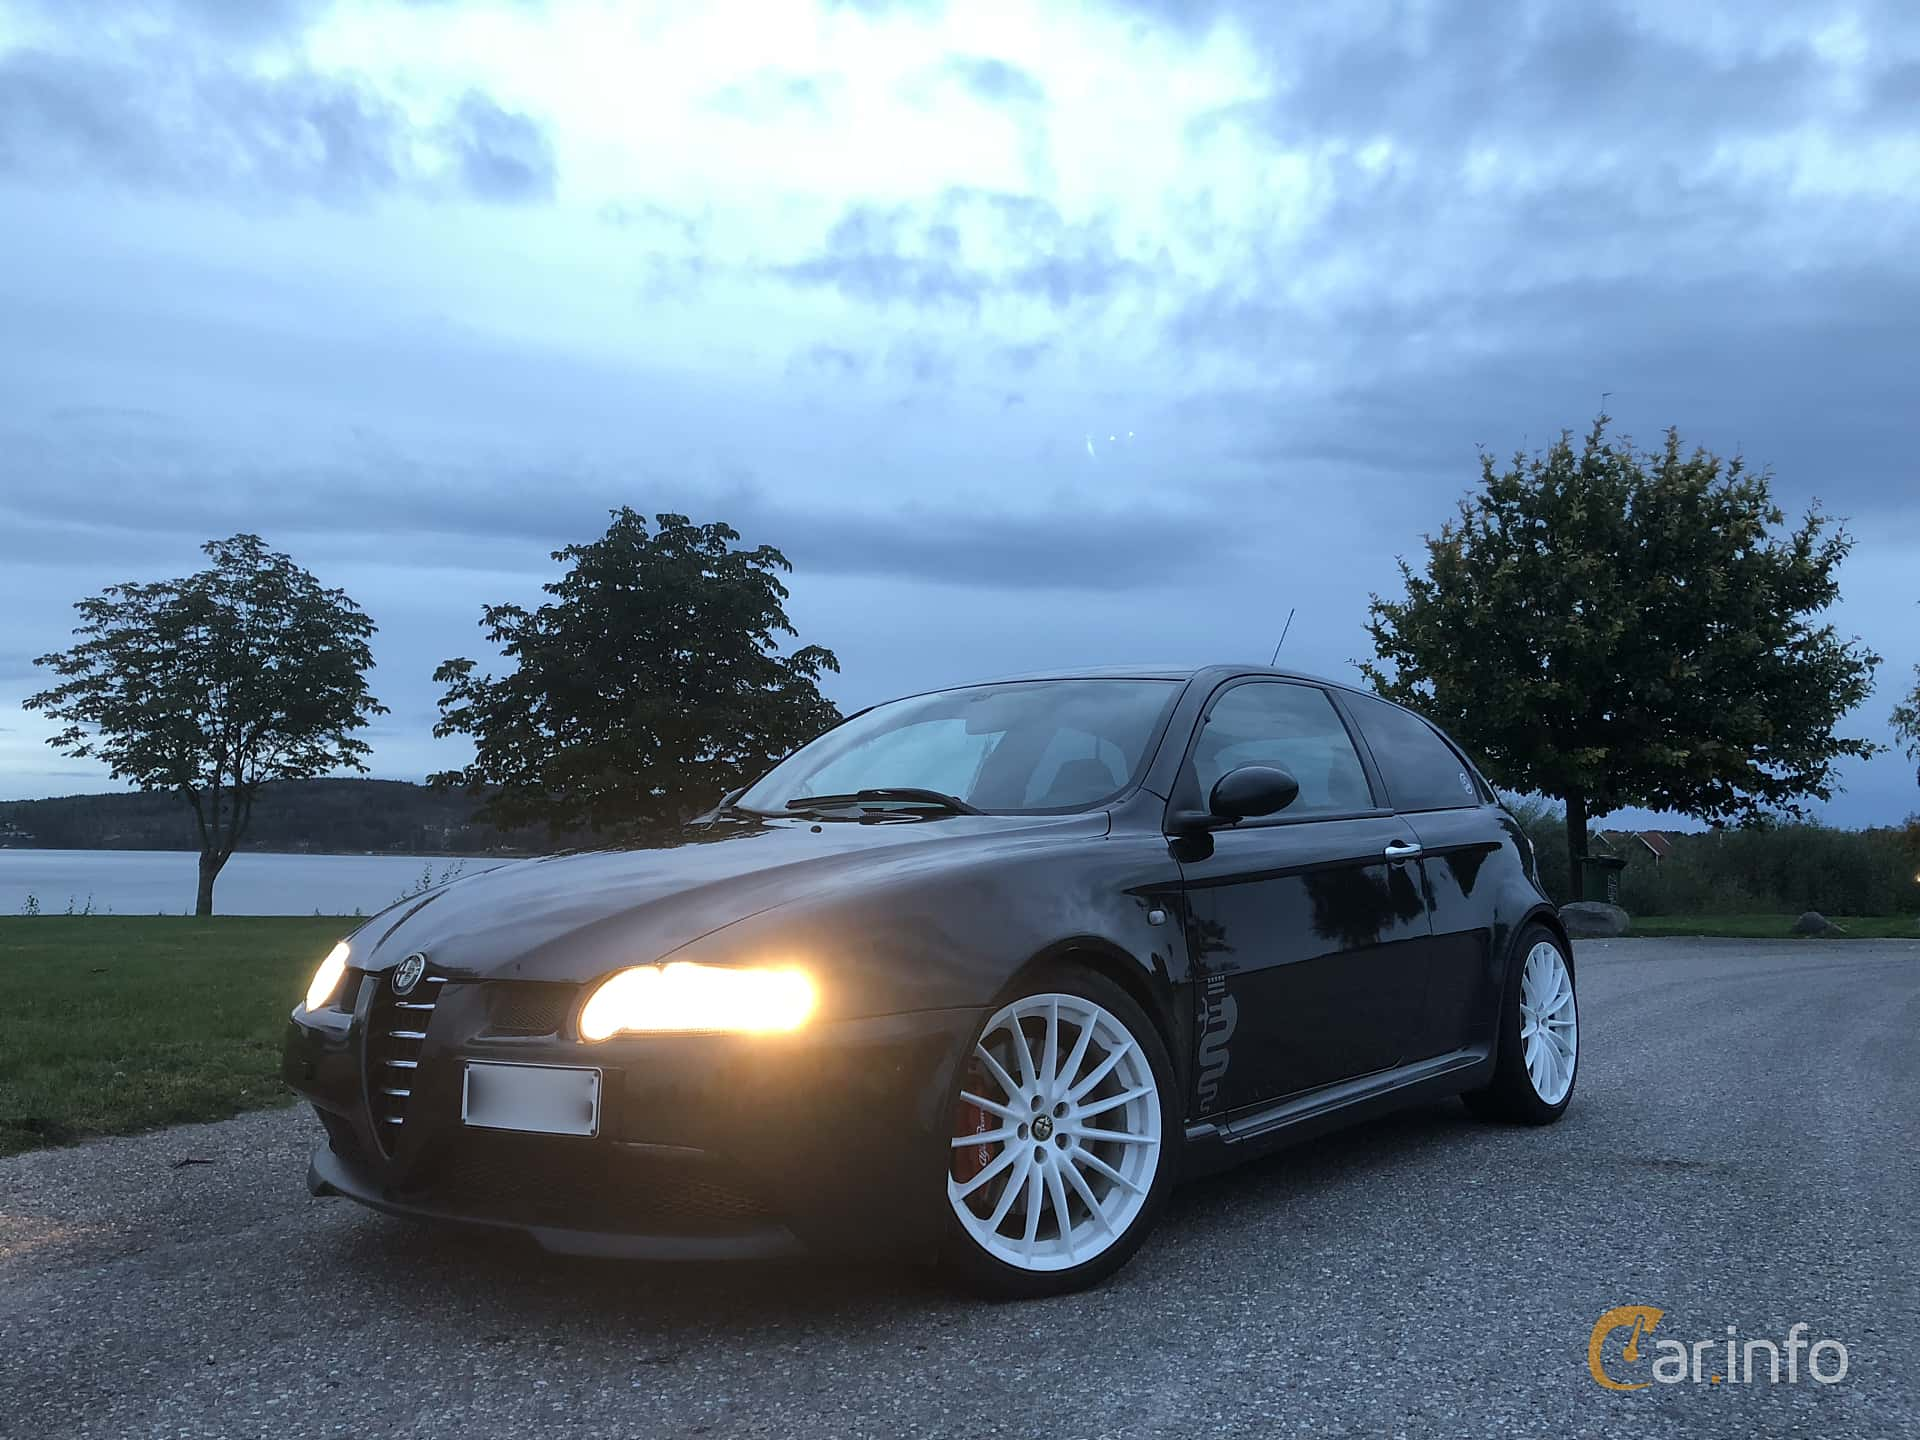 Alfa Romeo 147 GTA 3.2 V6 Manual, 250hp, 2005